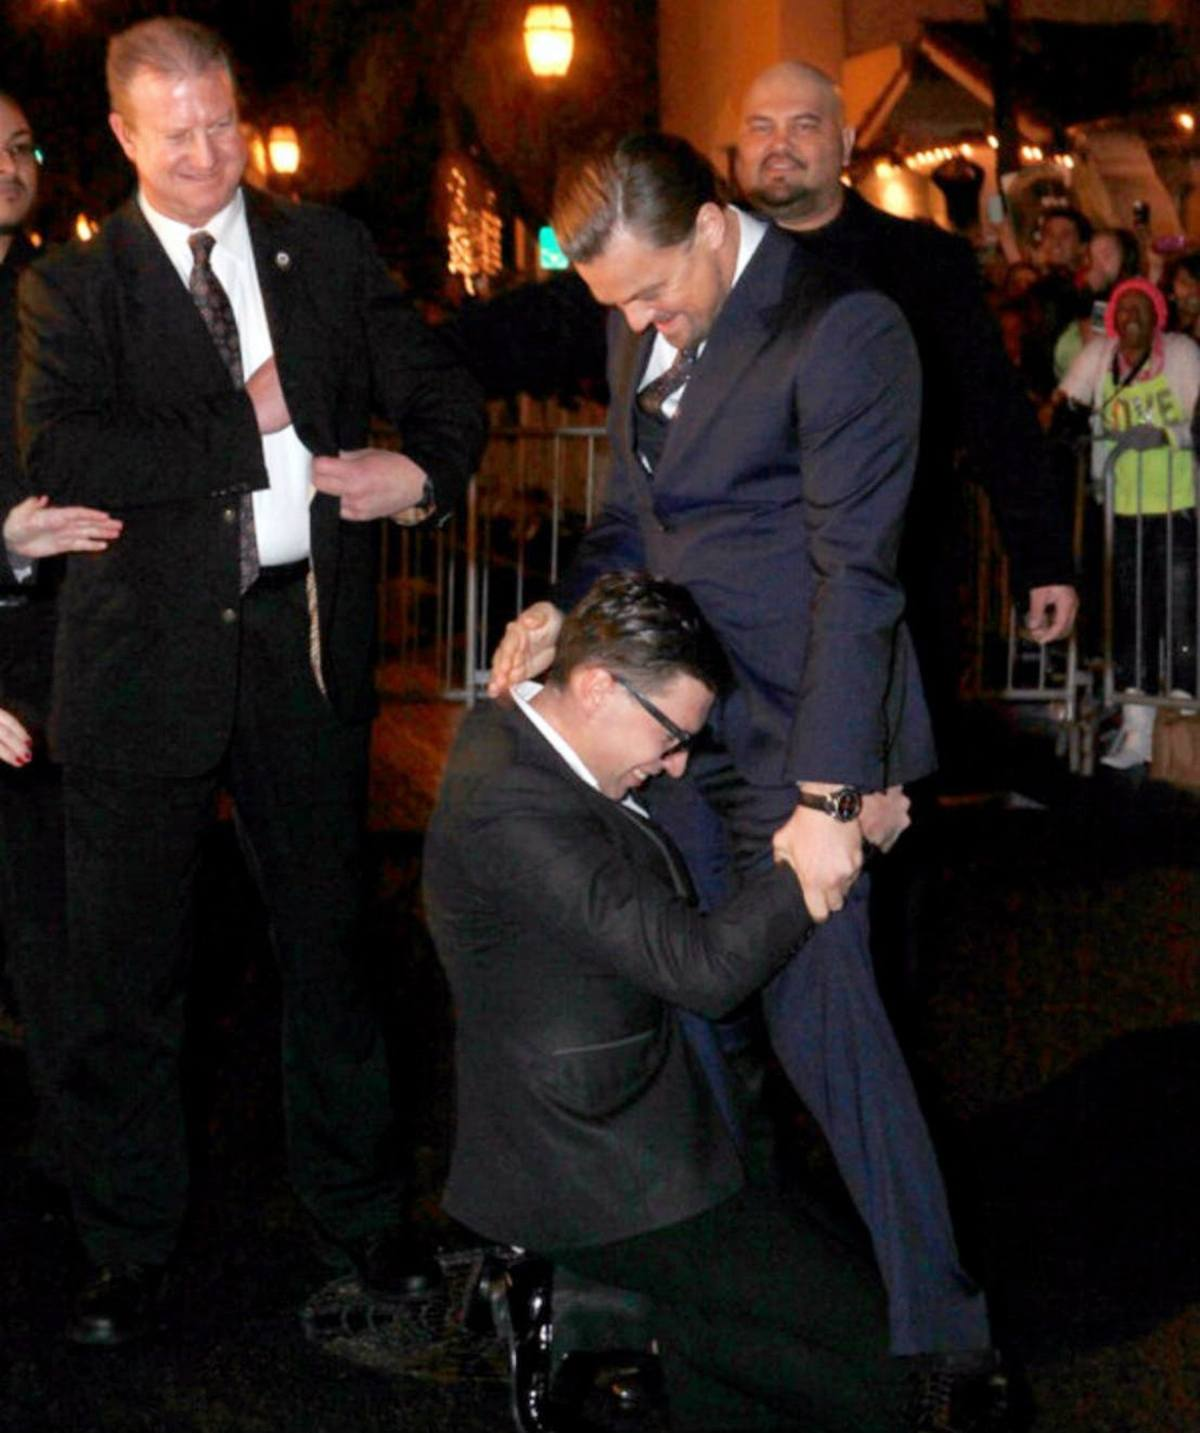 8 4 10 Photos Leonardo DiCaprio Does NOT Want You To See